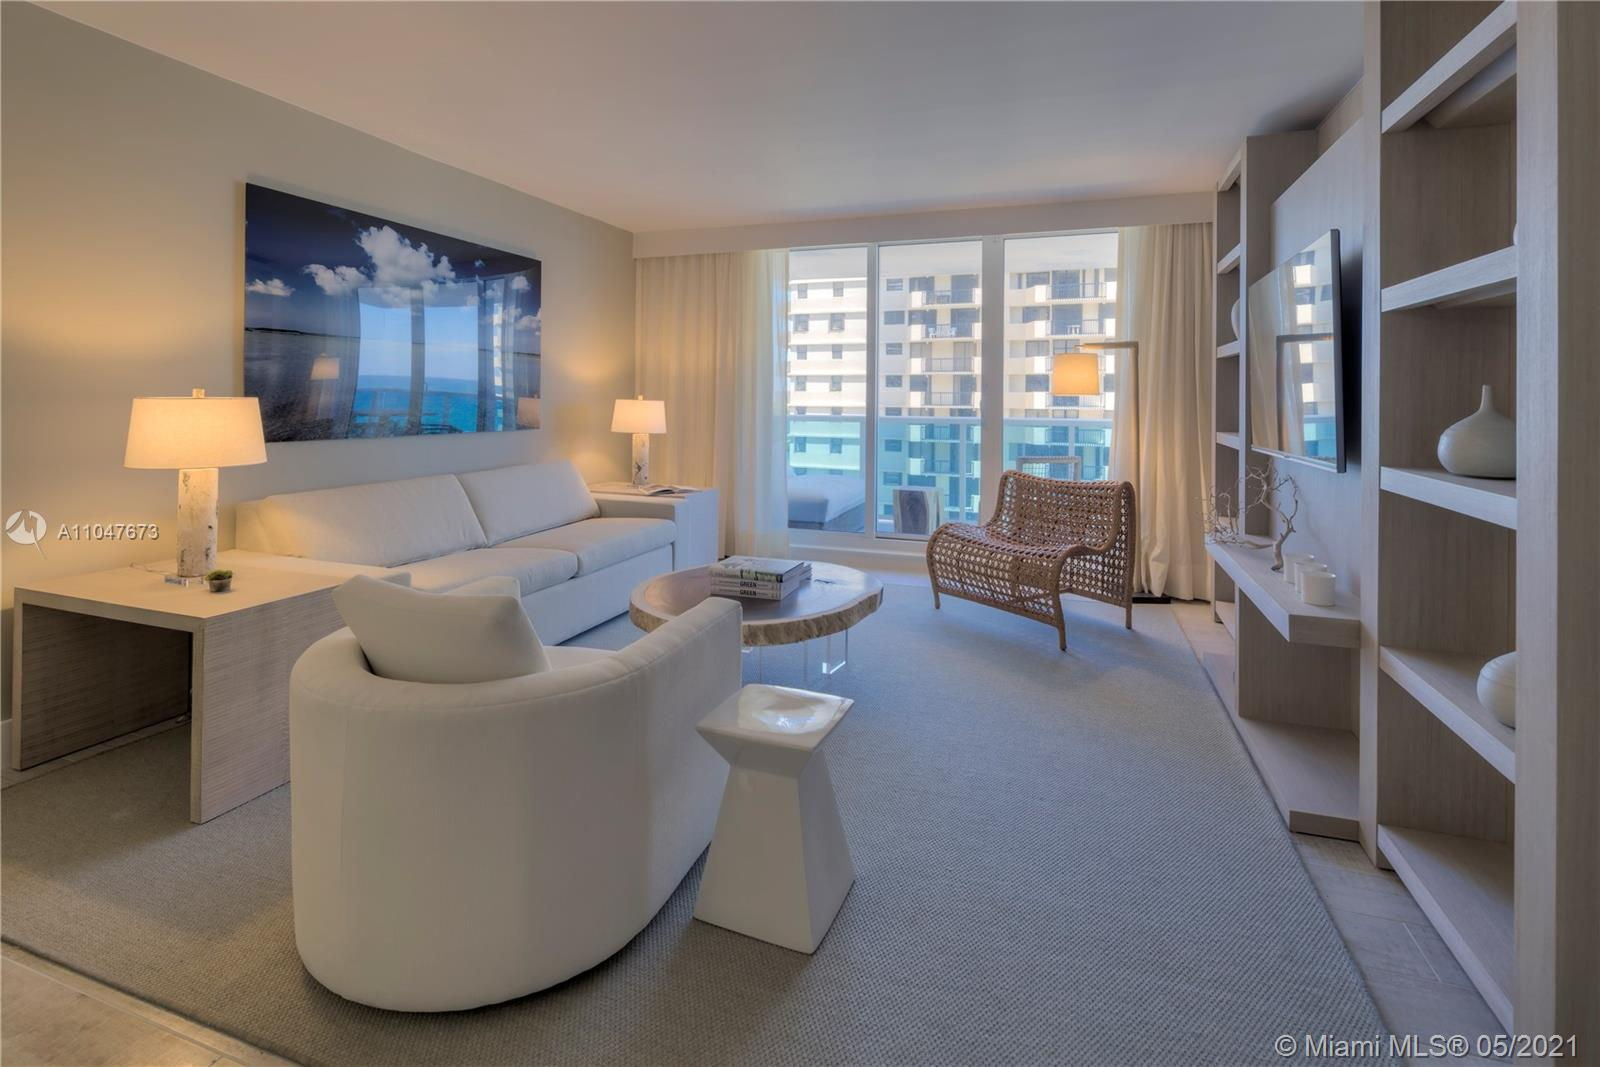 Gorgeous 1 bedroom ocean front luxury condo renting between 30%-60% below hotel rates. All of out properties come with luxurious linens and towels. Residences comes with fully furnished private balcony with views of the Miami skyline. Plush living room sofa that converts into a queen bed and a 4 seat dining table. Our guests have access to all of the hotel amenities including 4 swimming pools, 8 restaurants, beach service, cabanas, fitness center, spa, valet service, concierge, ballroom, conference rooms and more.